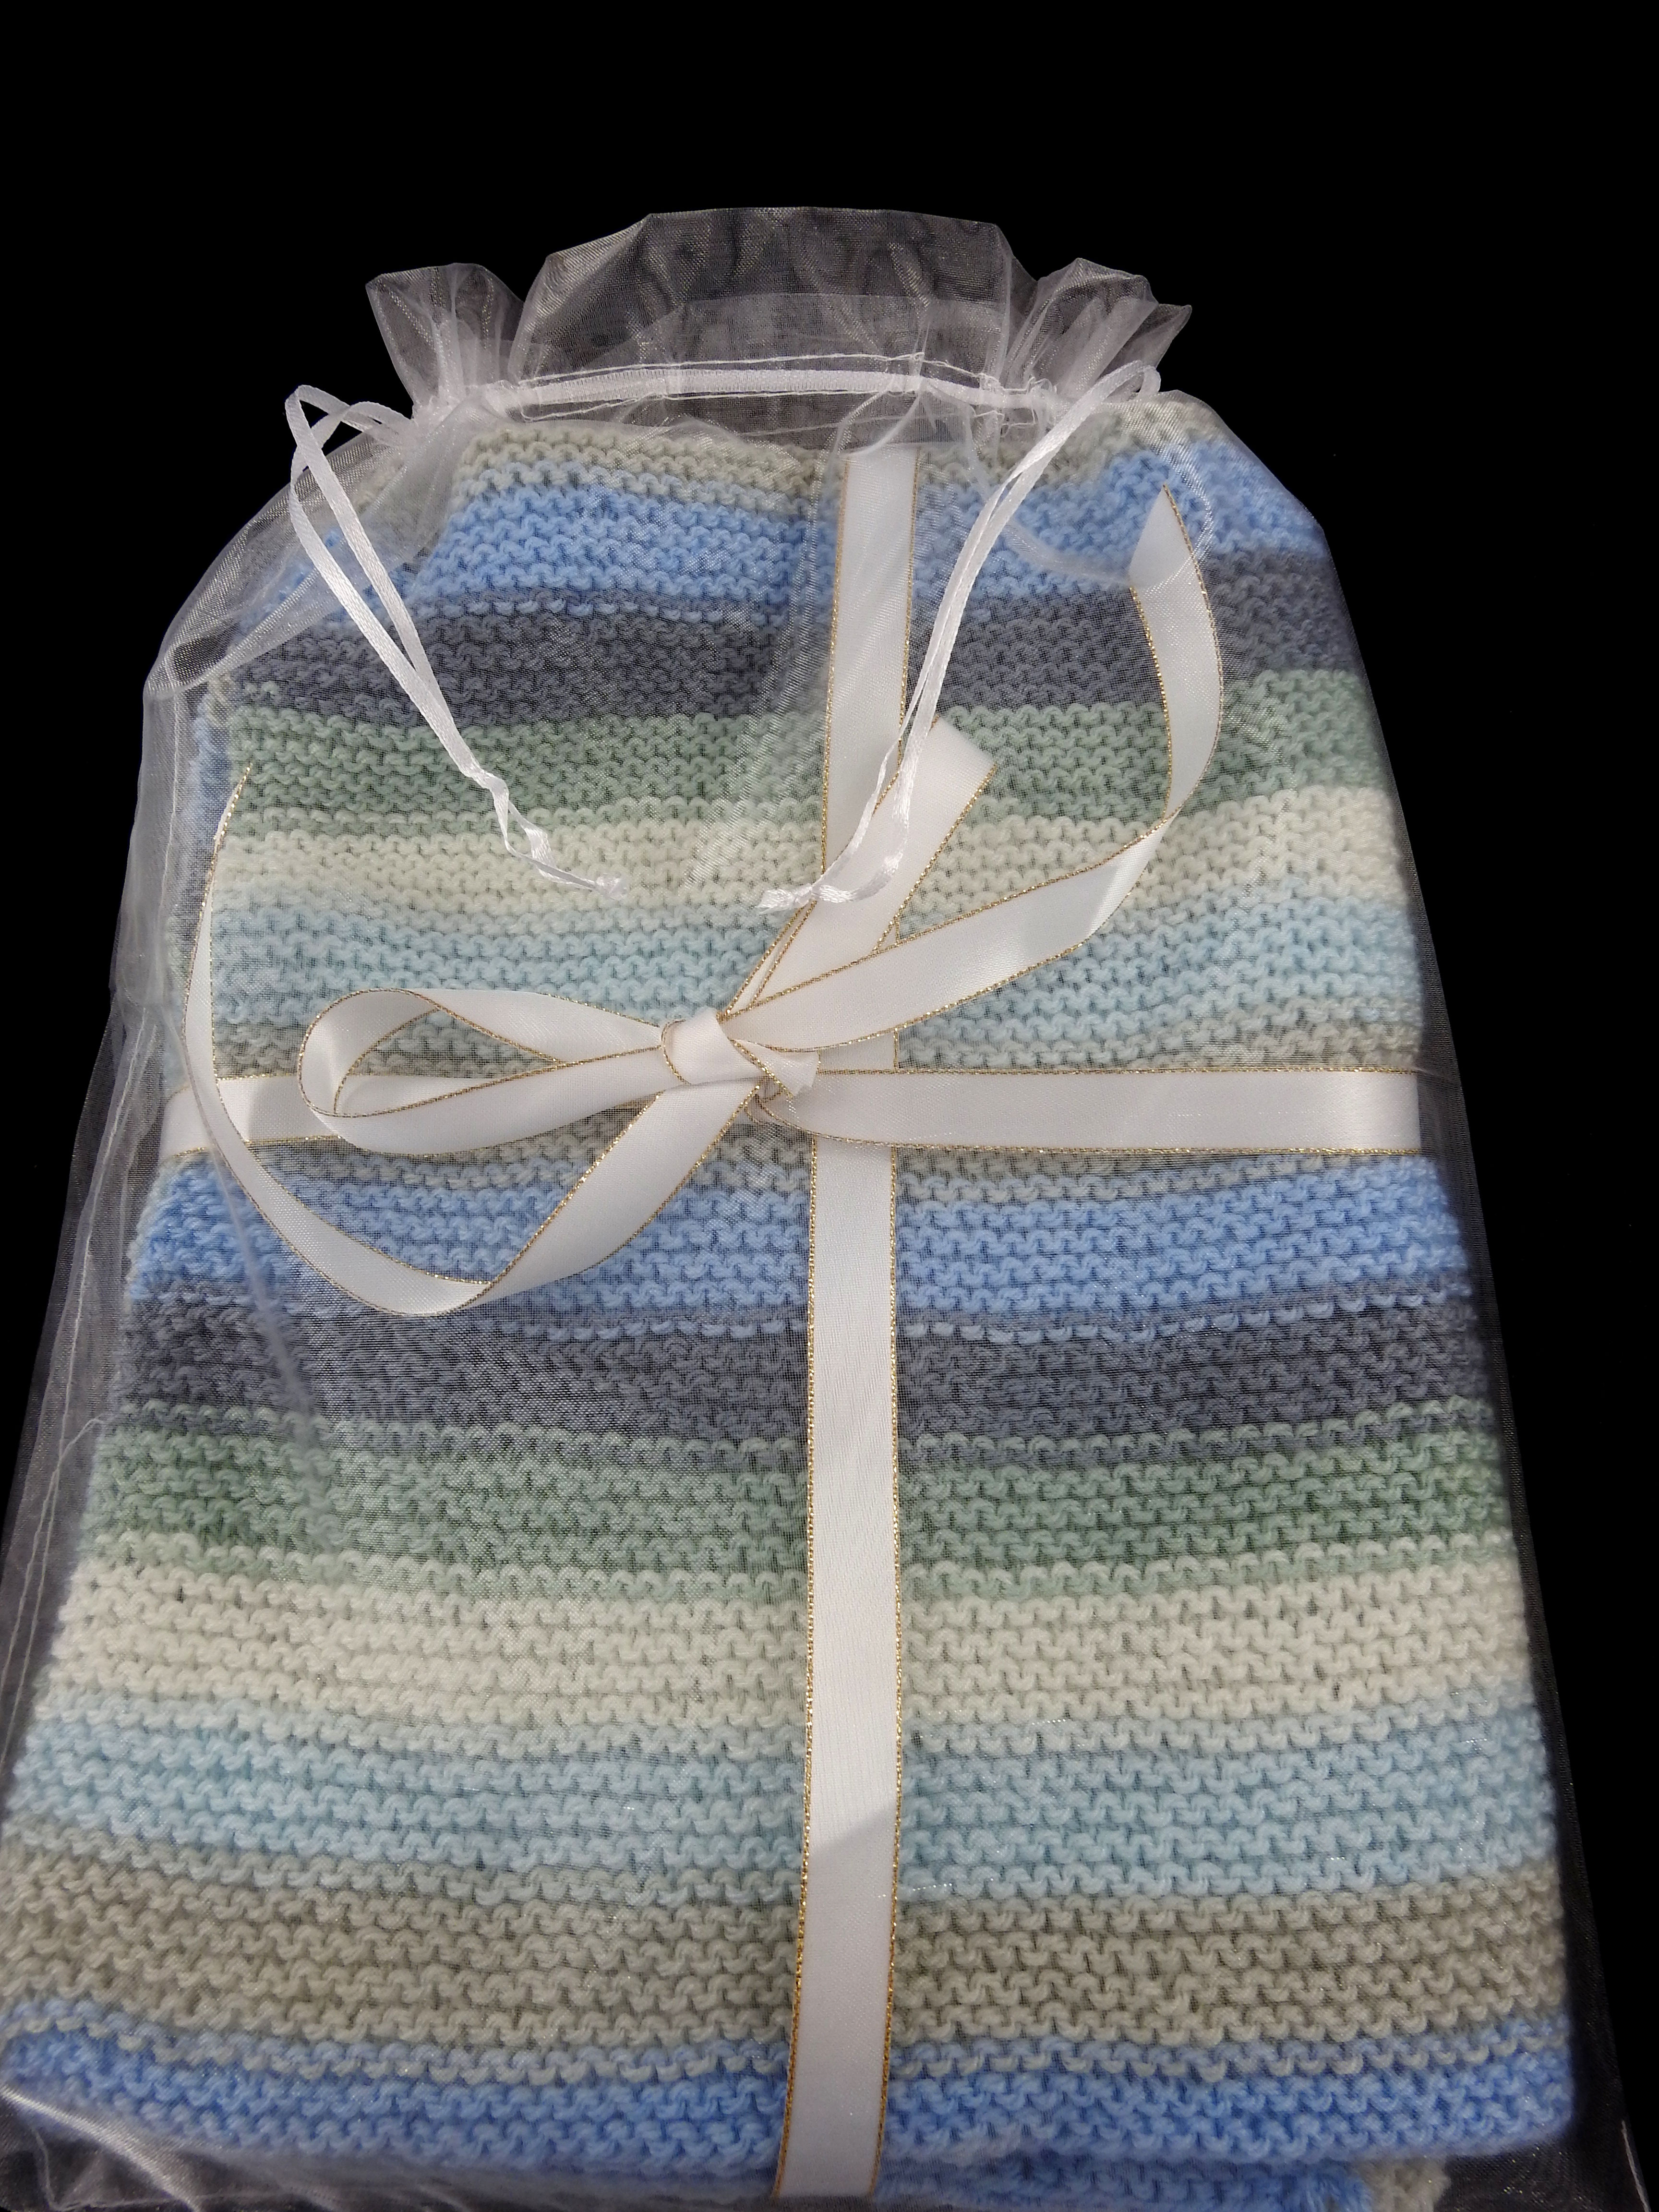 Hand Knitted Multicoloured Baby Blanket - FREE SHIPPING from Dreams Of  Avalon